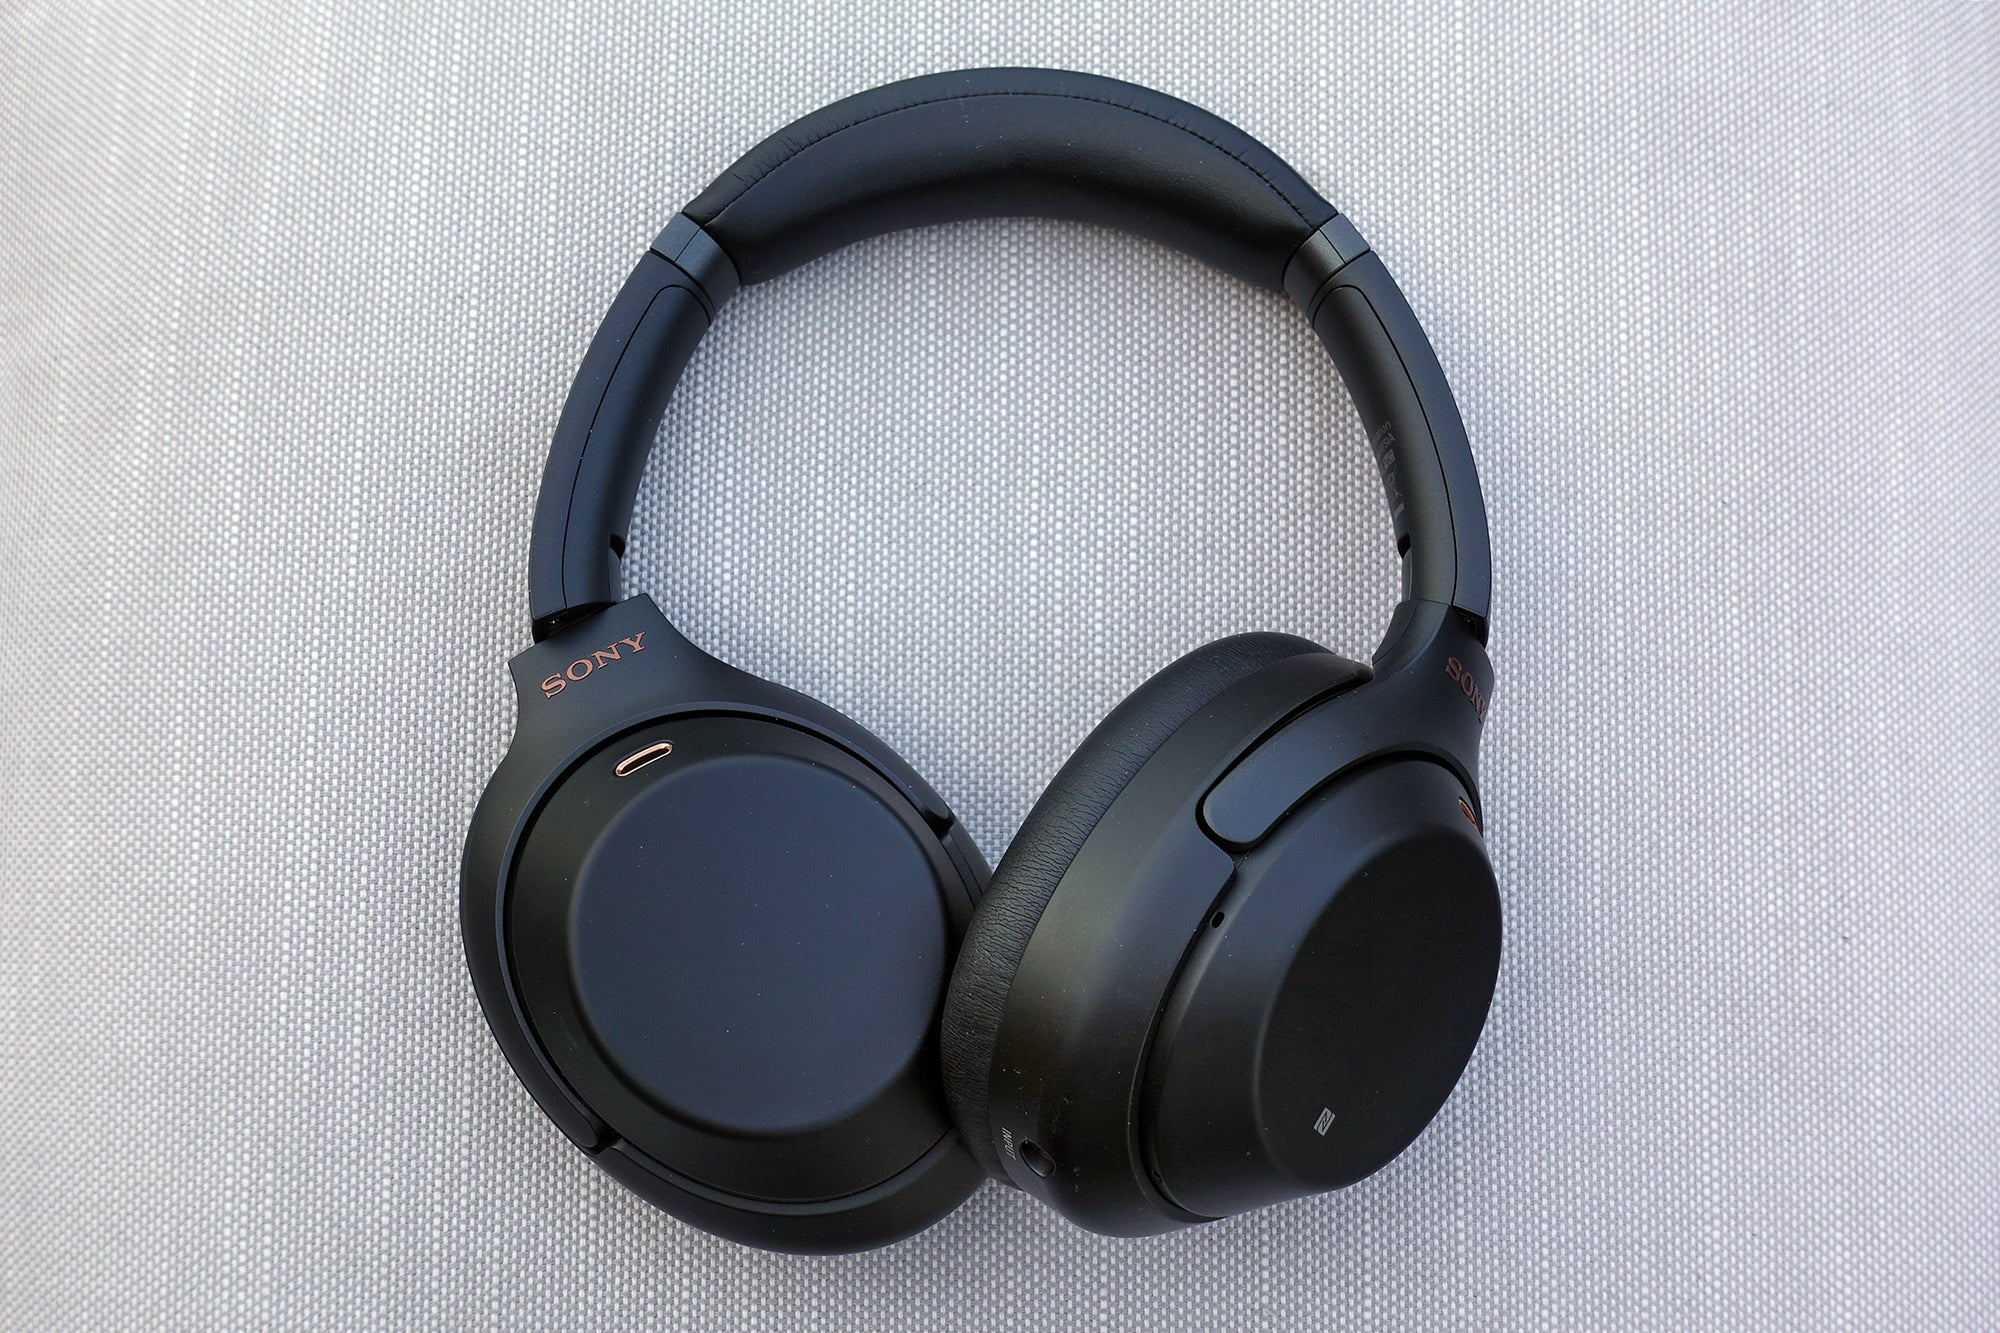 Sony Wh 1000xm3 Review The Greatest Noise Cancelling Headphones